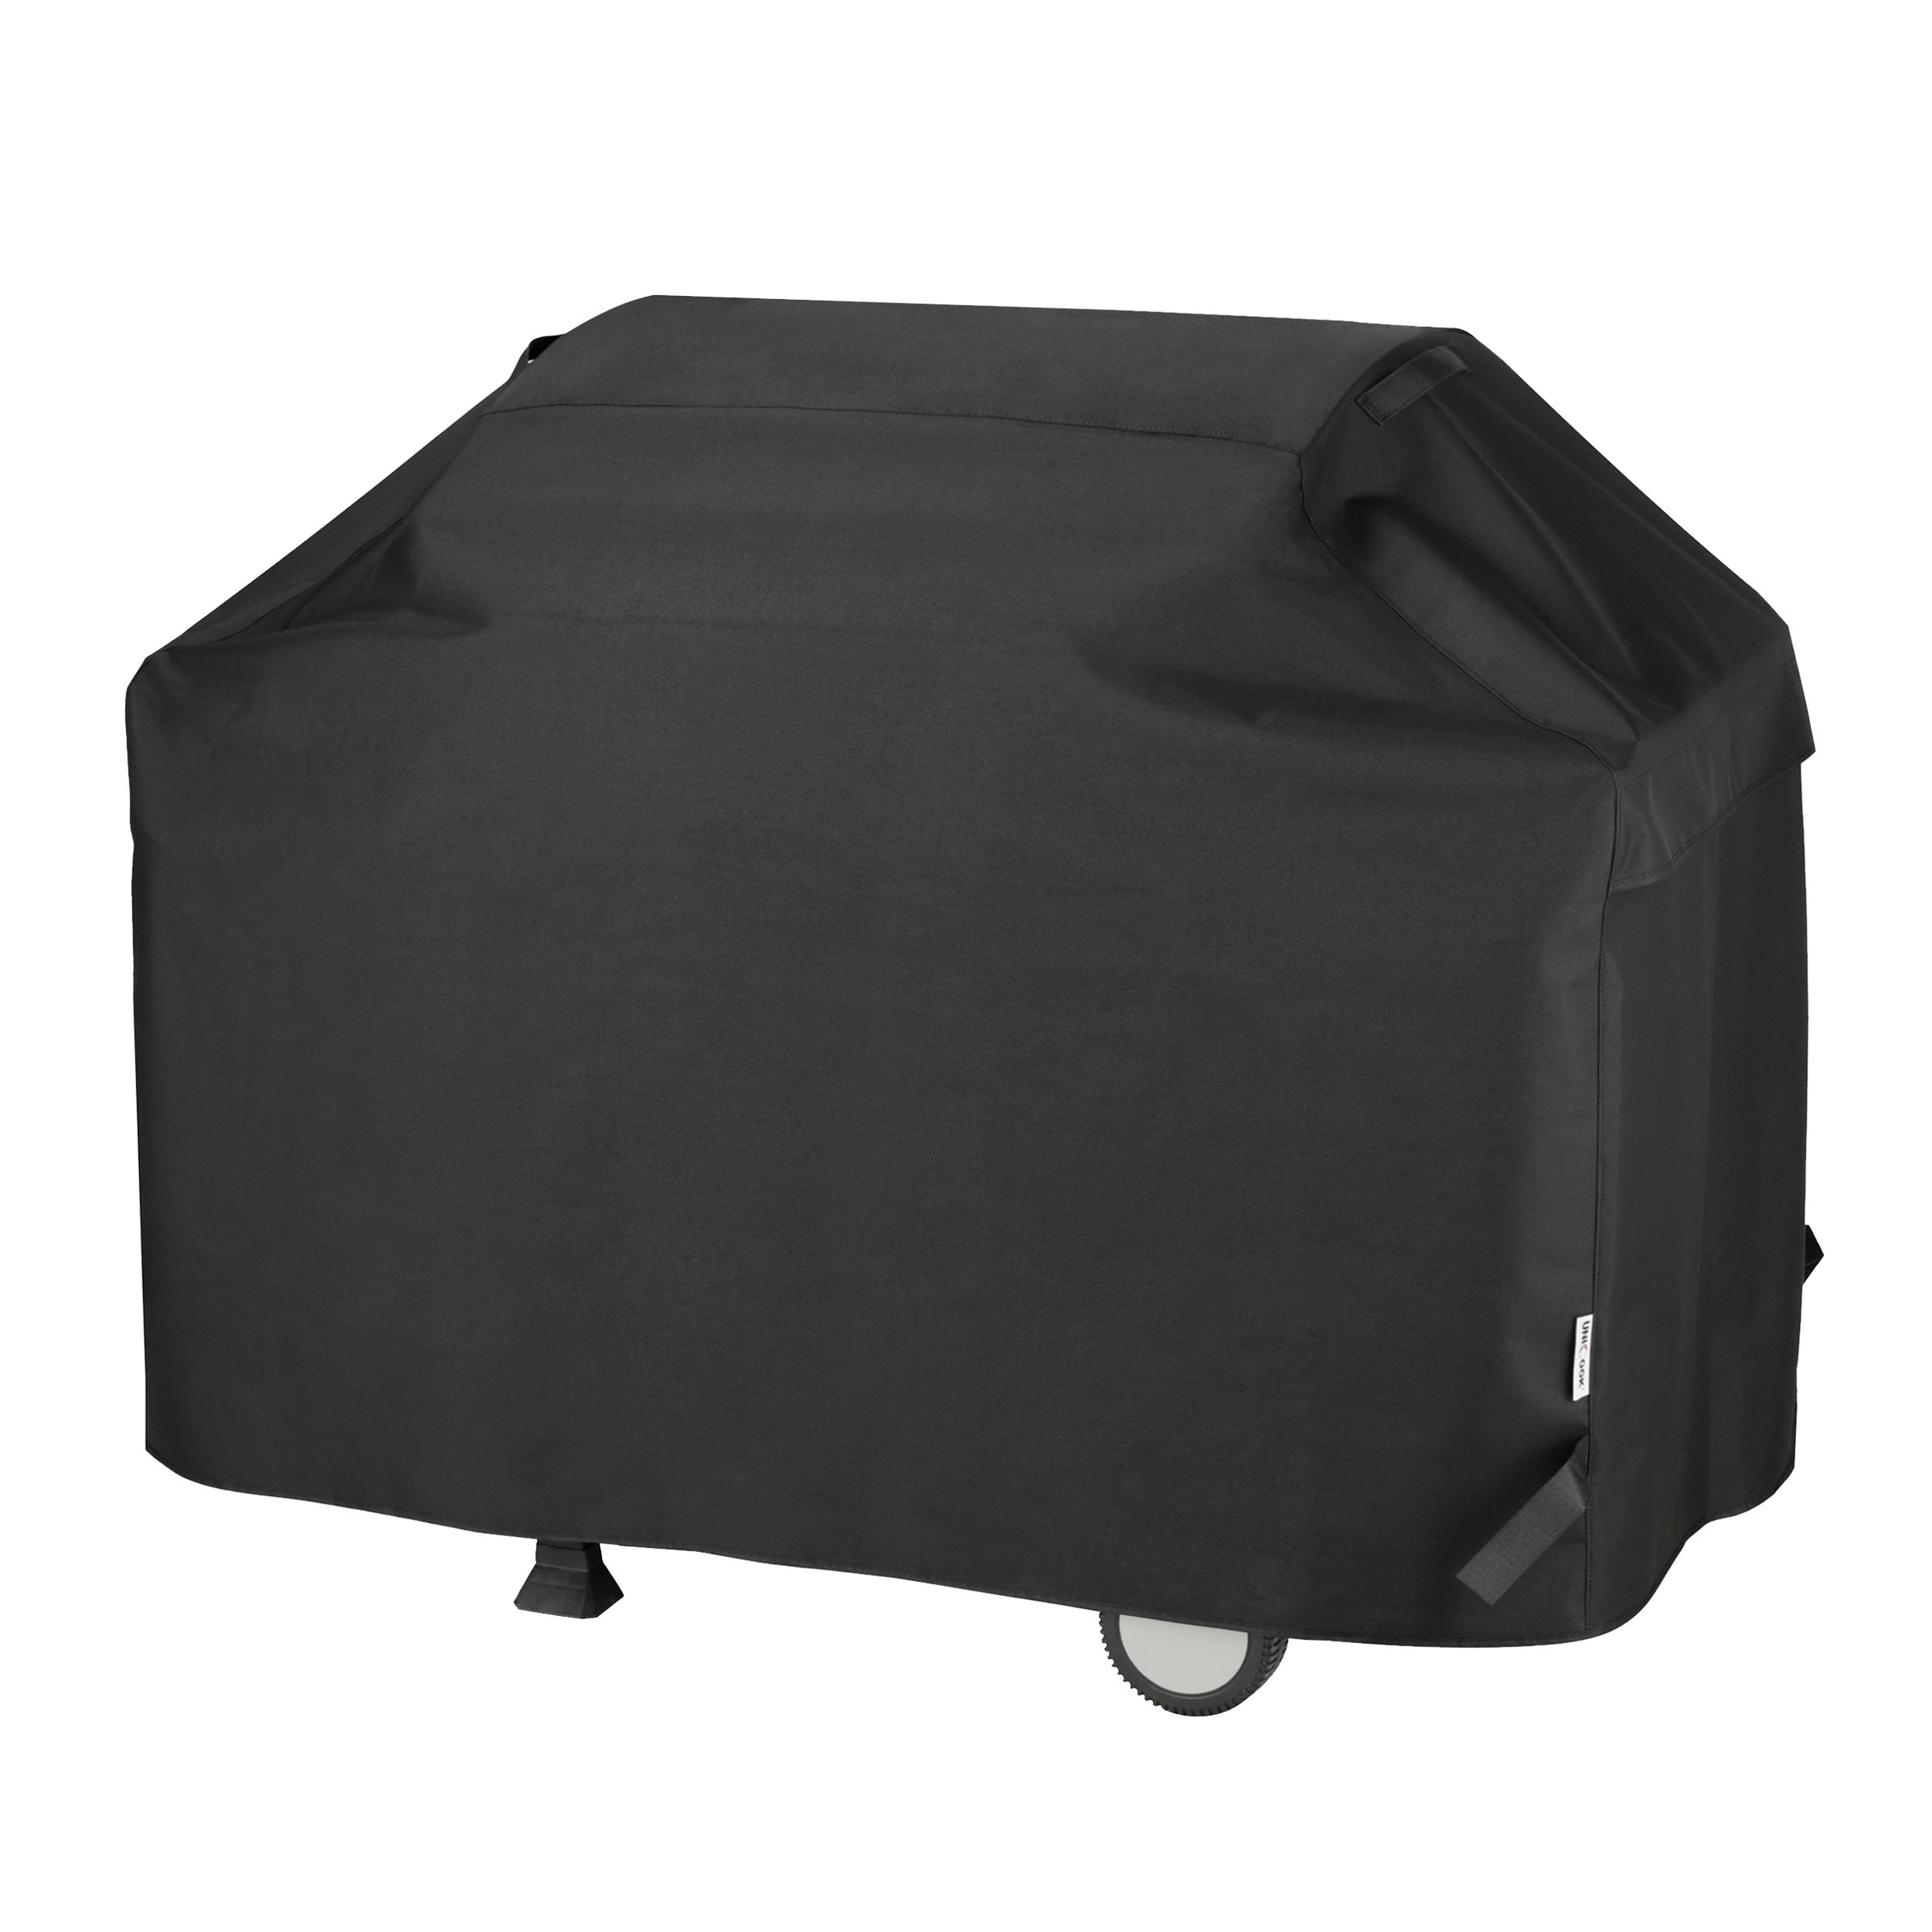 UNICOOK Heavy Duty Waterproof Barbecue Gas Grill Cover, 65-inch BBQ Cover, Special Fade and UV Resistant Material, Durable and Convenient, Fits Grills of Weber Char-Broil Nexgrill Brinkmann and More